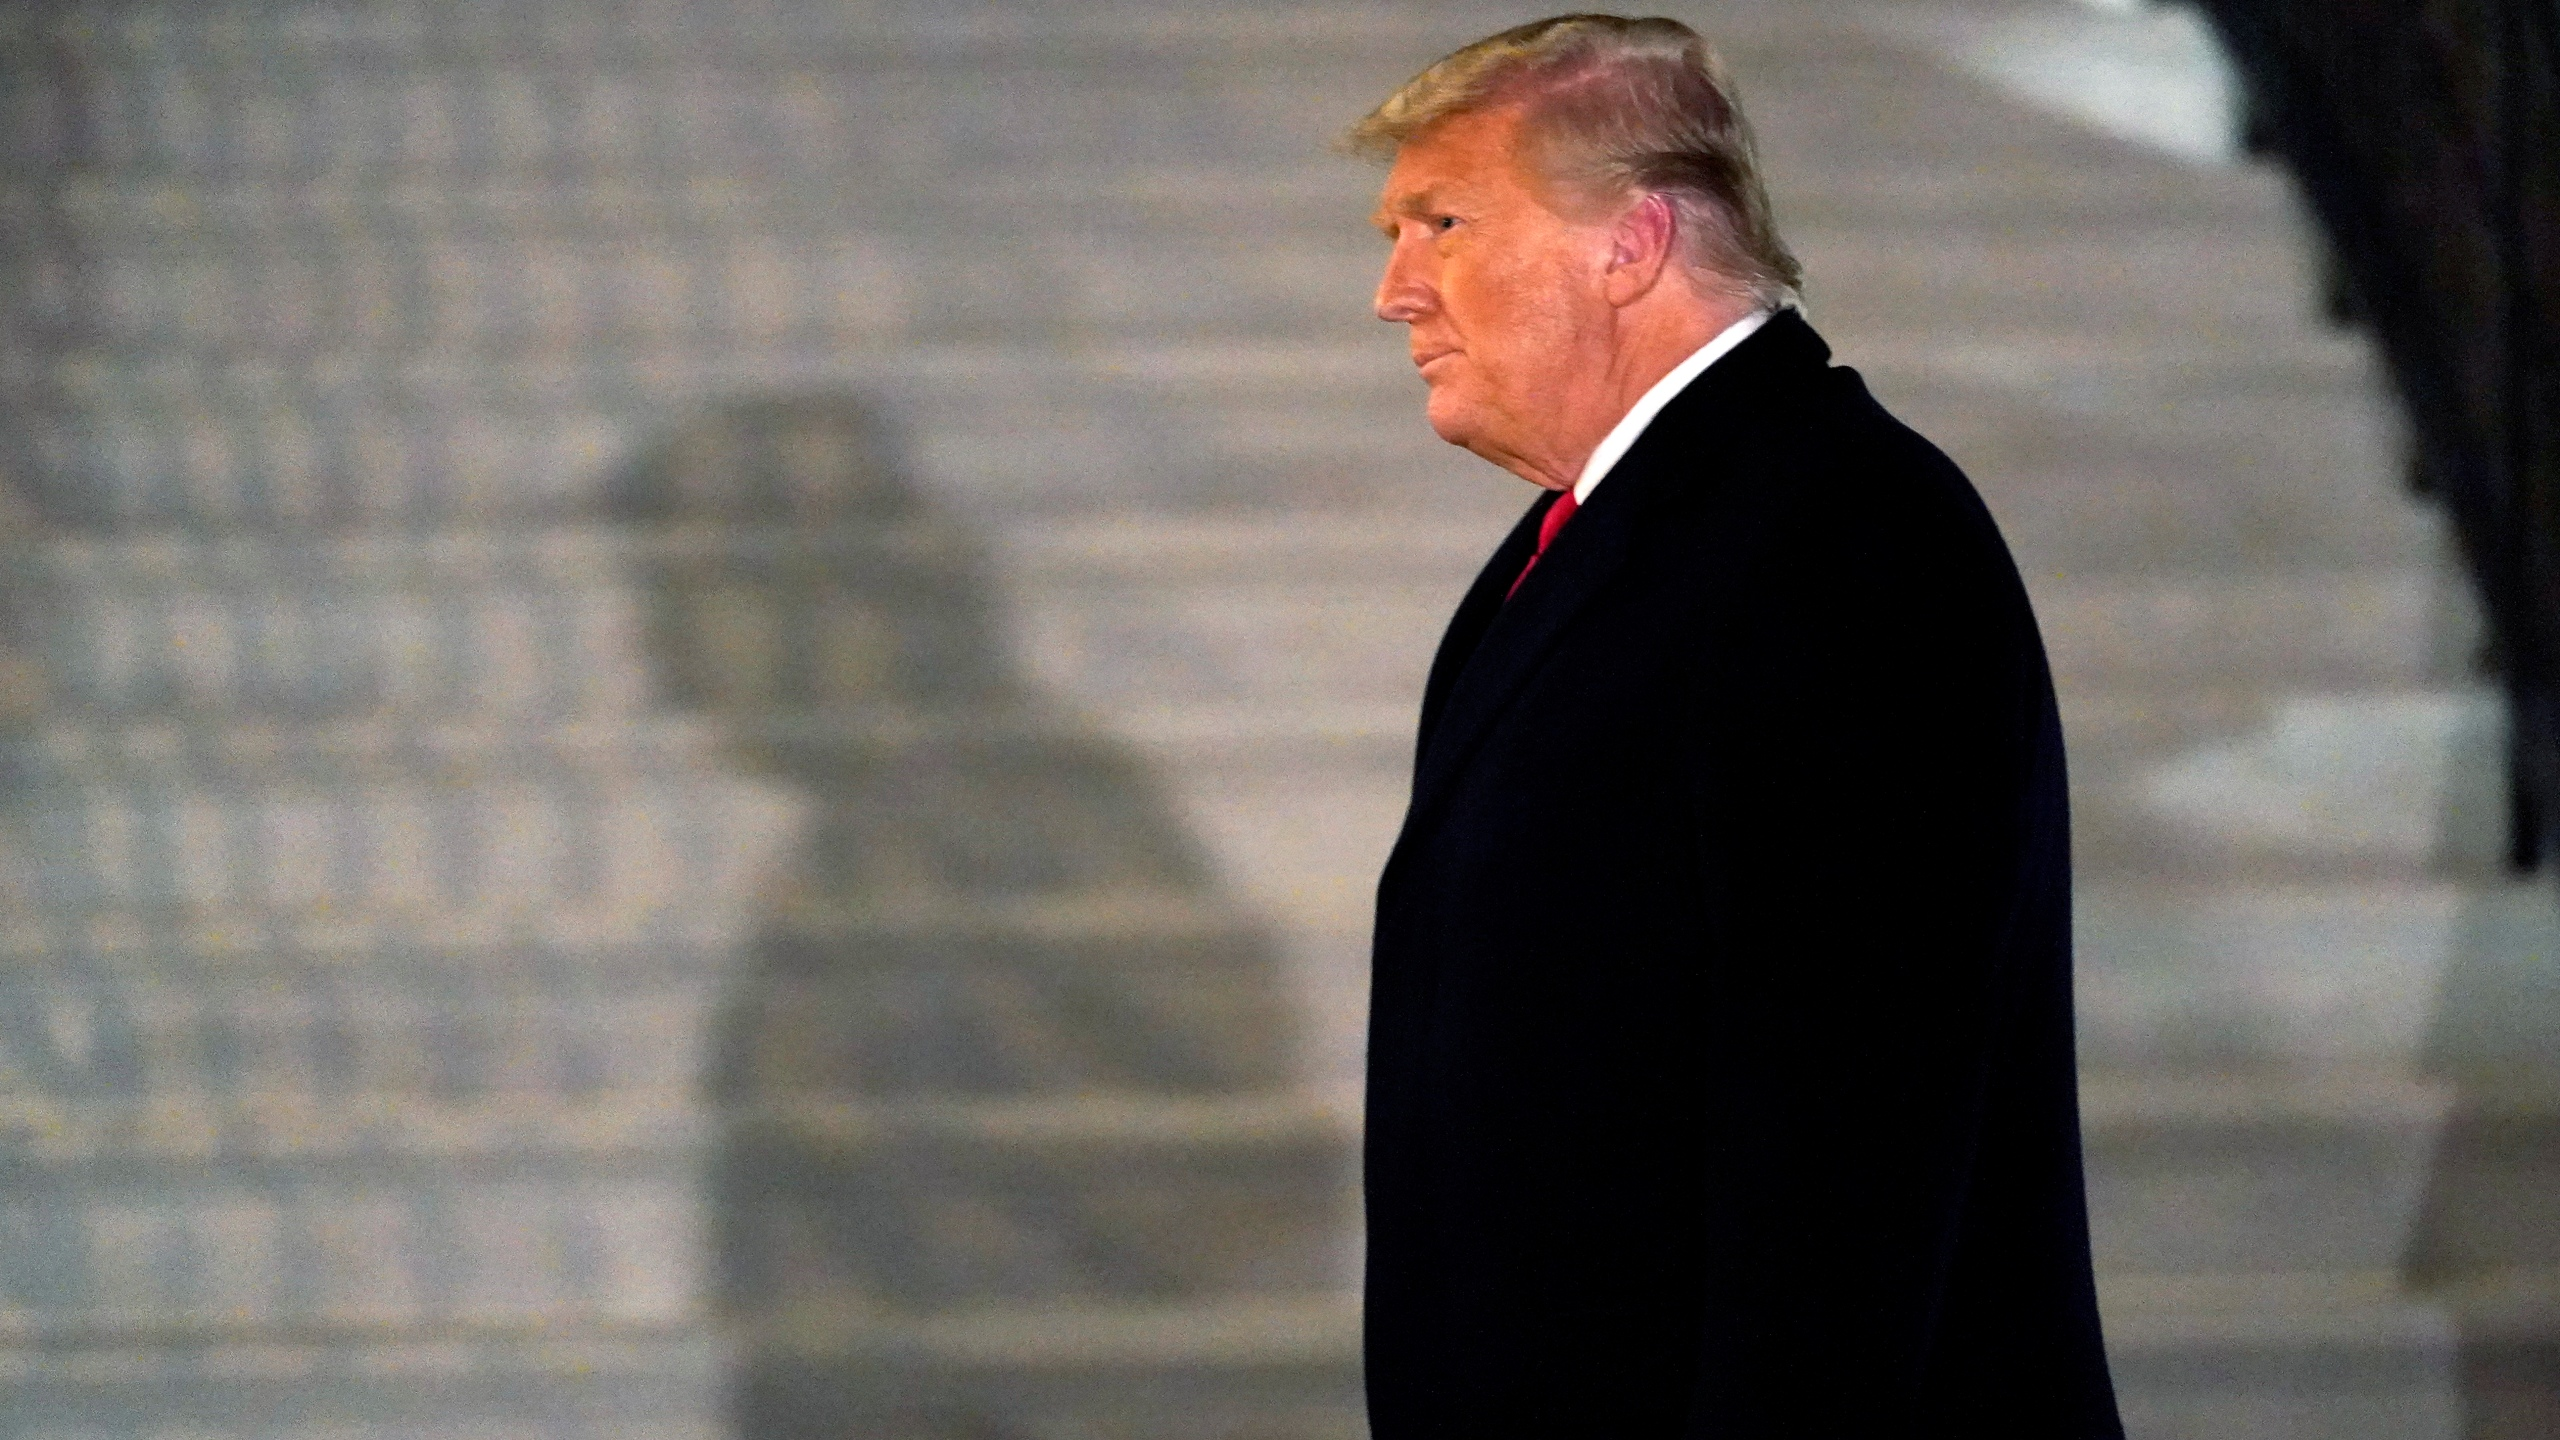 In this Tuesday, Jan. 12, 2021, file photo, President Donald Trump arrives on the South Lawn of the White House, in Washington, after returning from Texas. (AP Photo/Gerald Herbert)